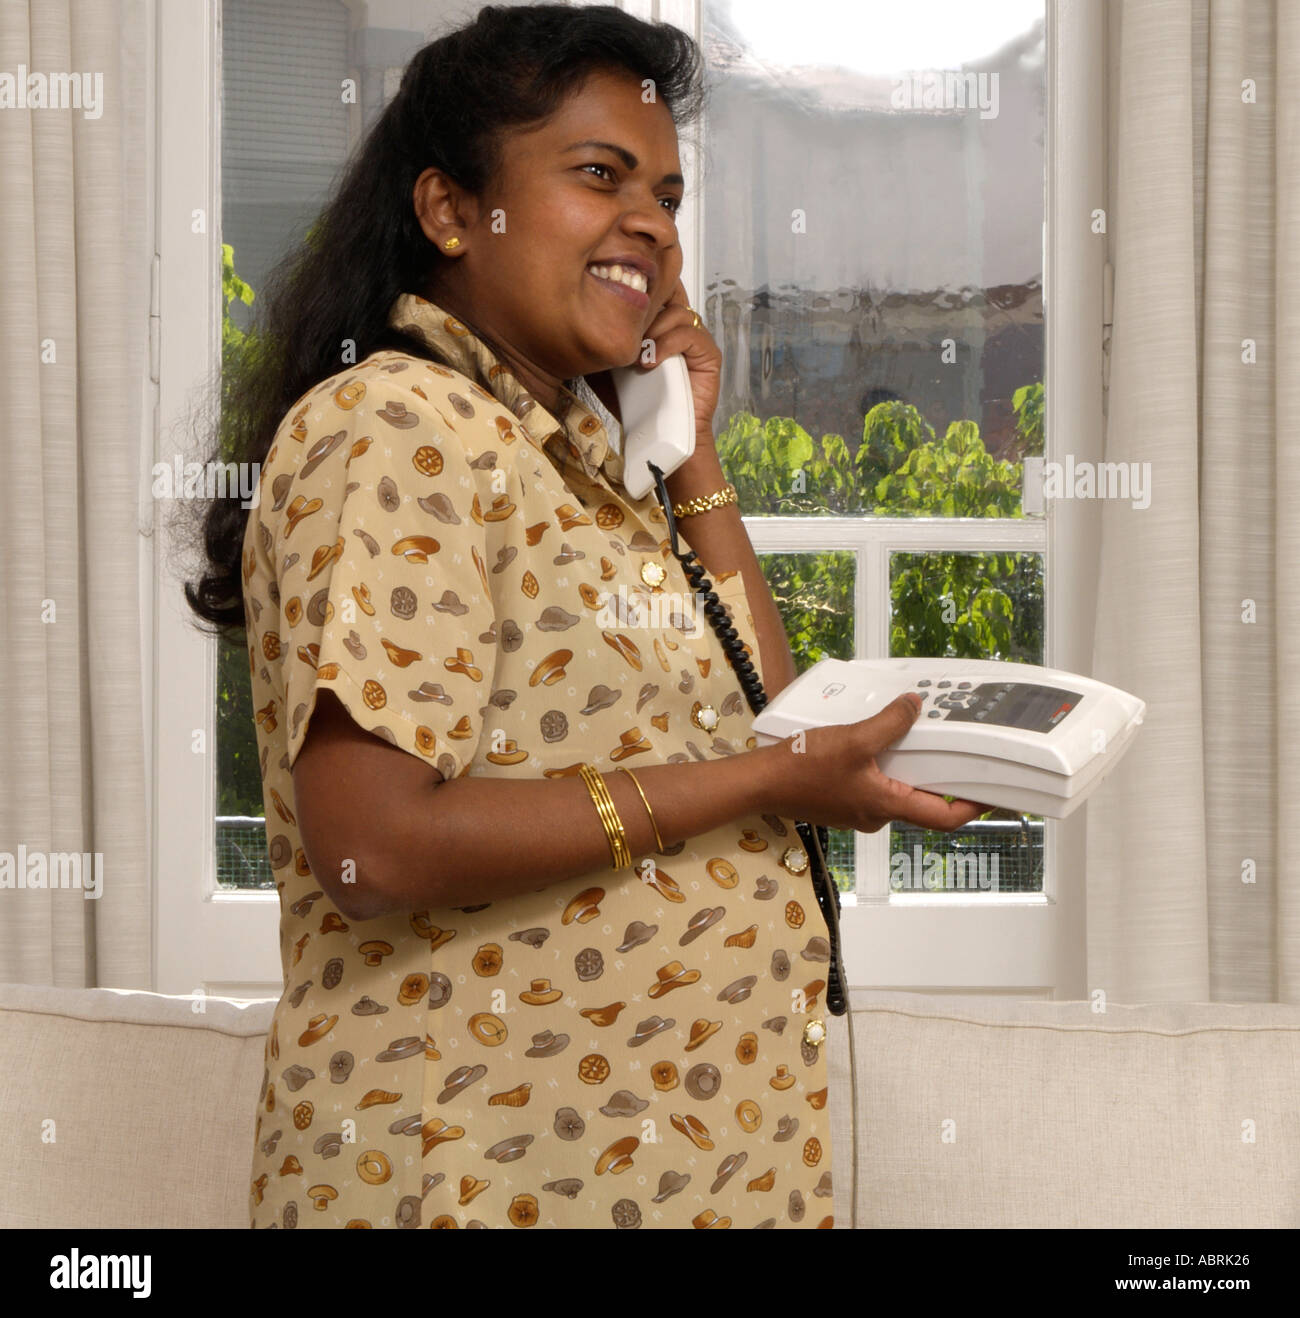 Indian sri lankan woman 8 months pregnant talking on phone for Gardening 8 months pregnant